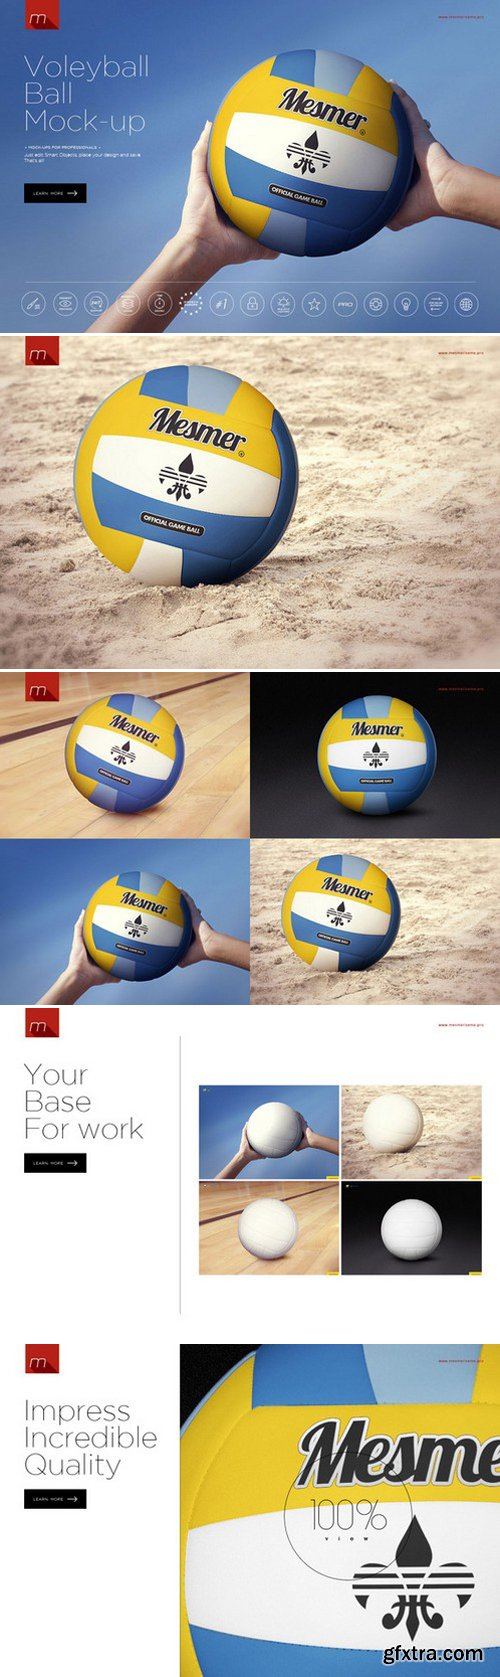 CM - Volleyball Ball Mock-up 424043